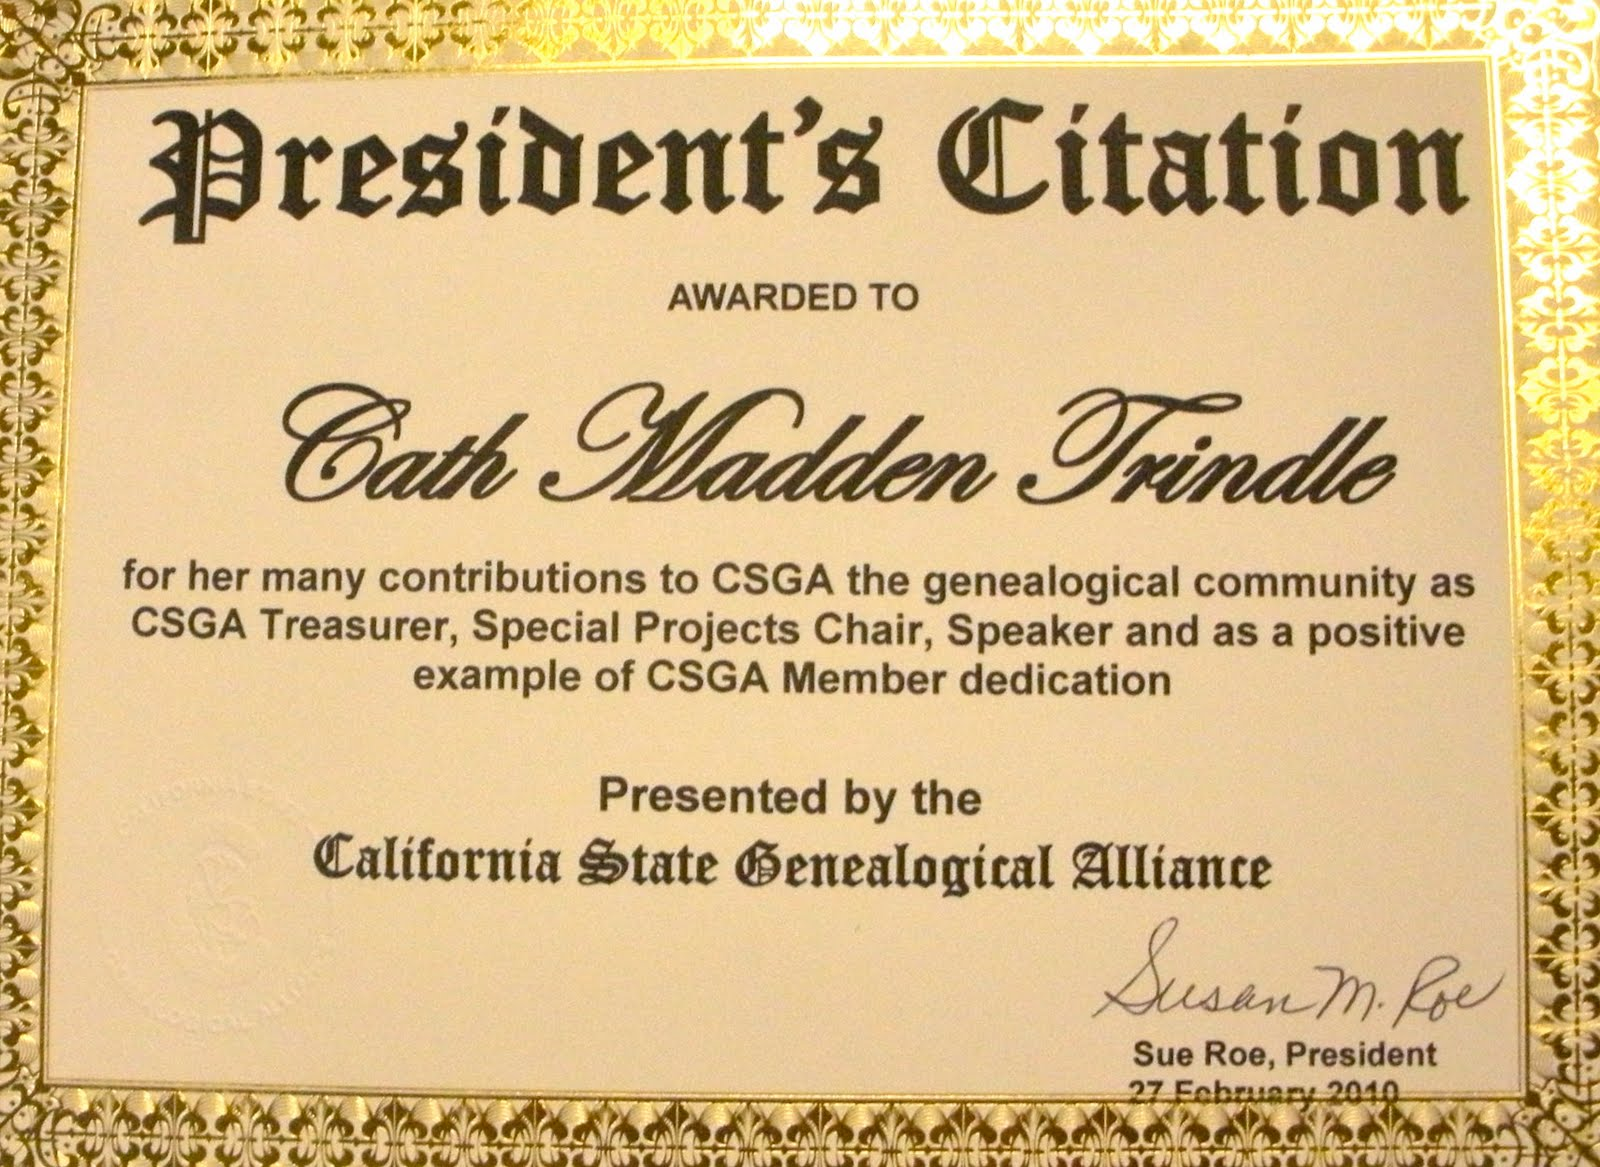 Award Citation Examples http://blog.californiaancestors.org/2010/06/member-spotlight-cath-madden-trindle.html